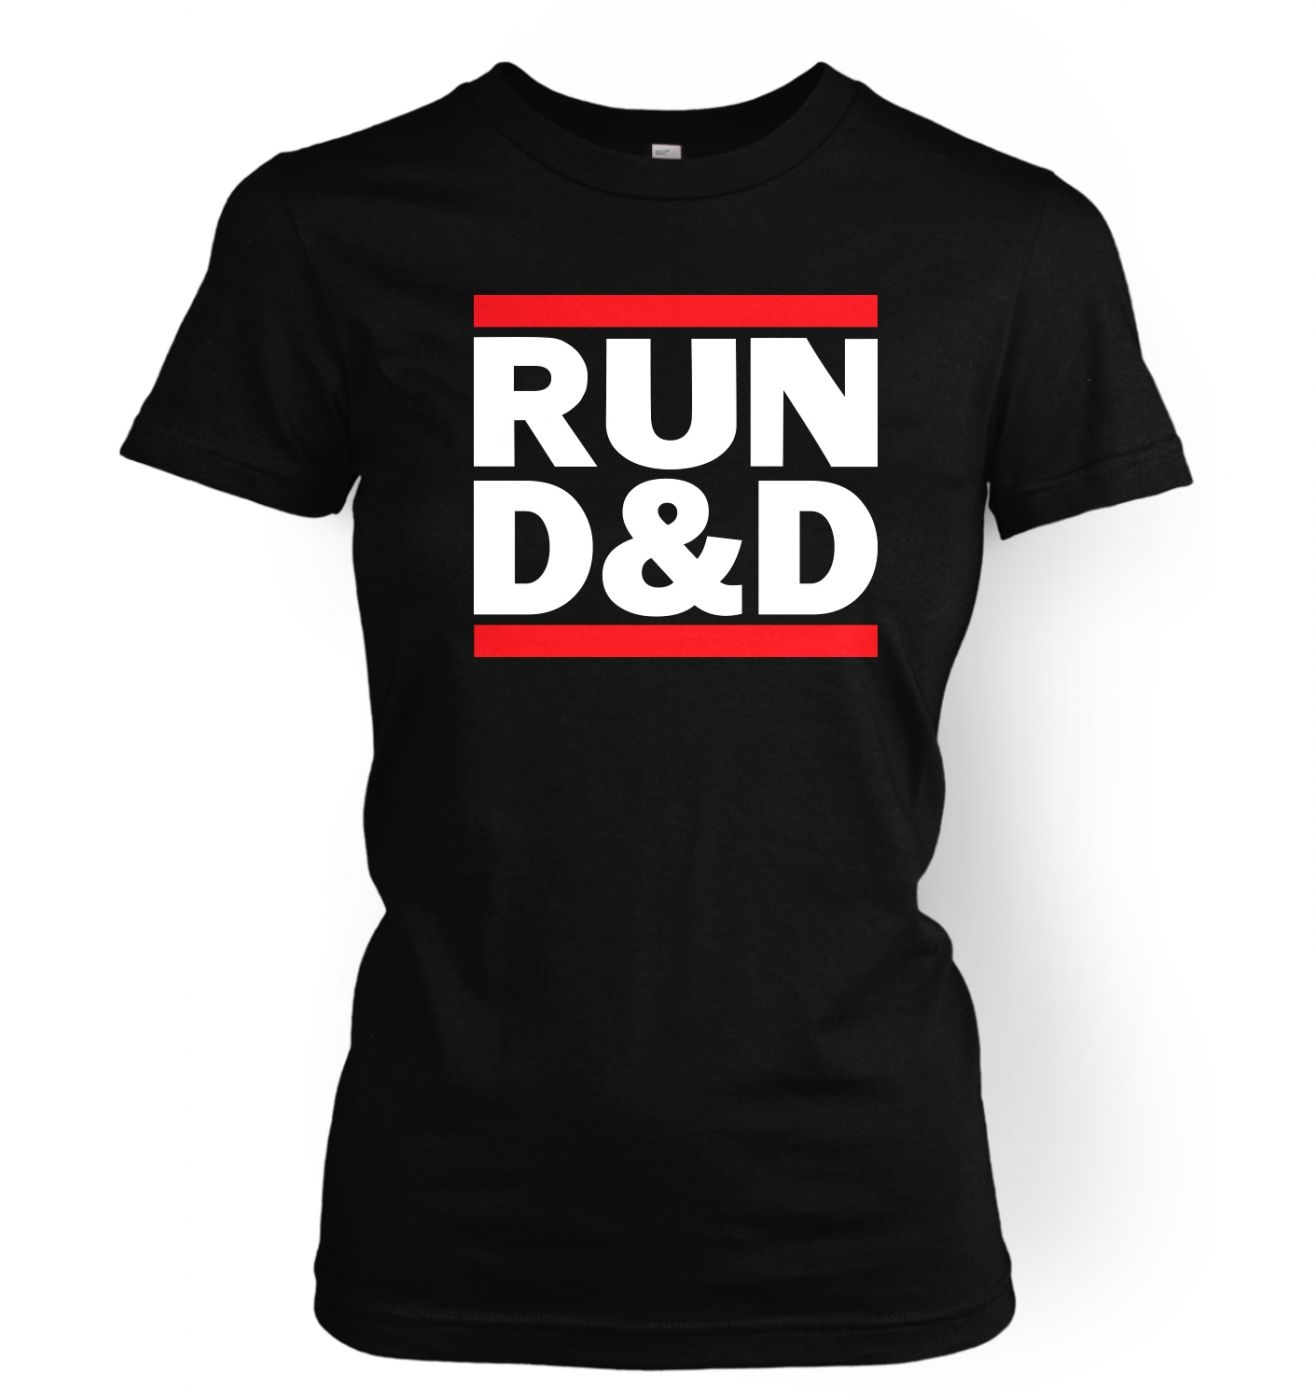 RUN D&D women's t-shirt - Ladies RUN DnD tshirt - women's funny RPG clothing